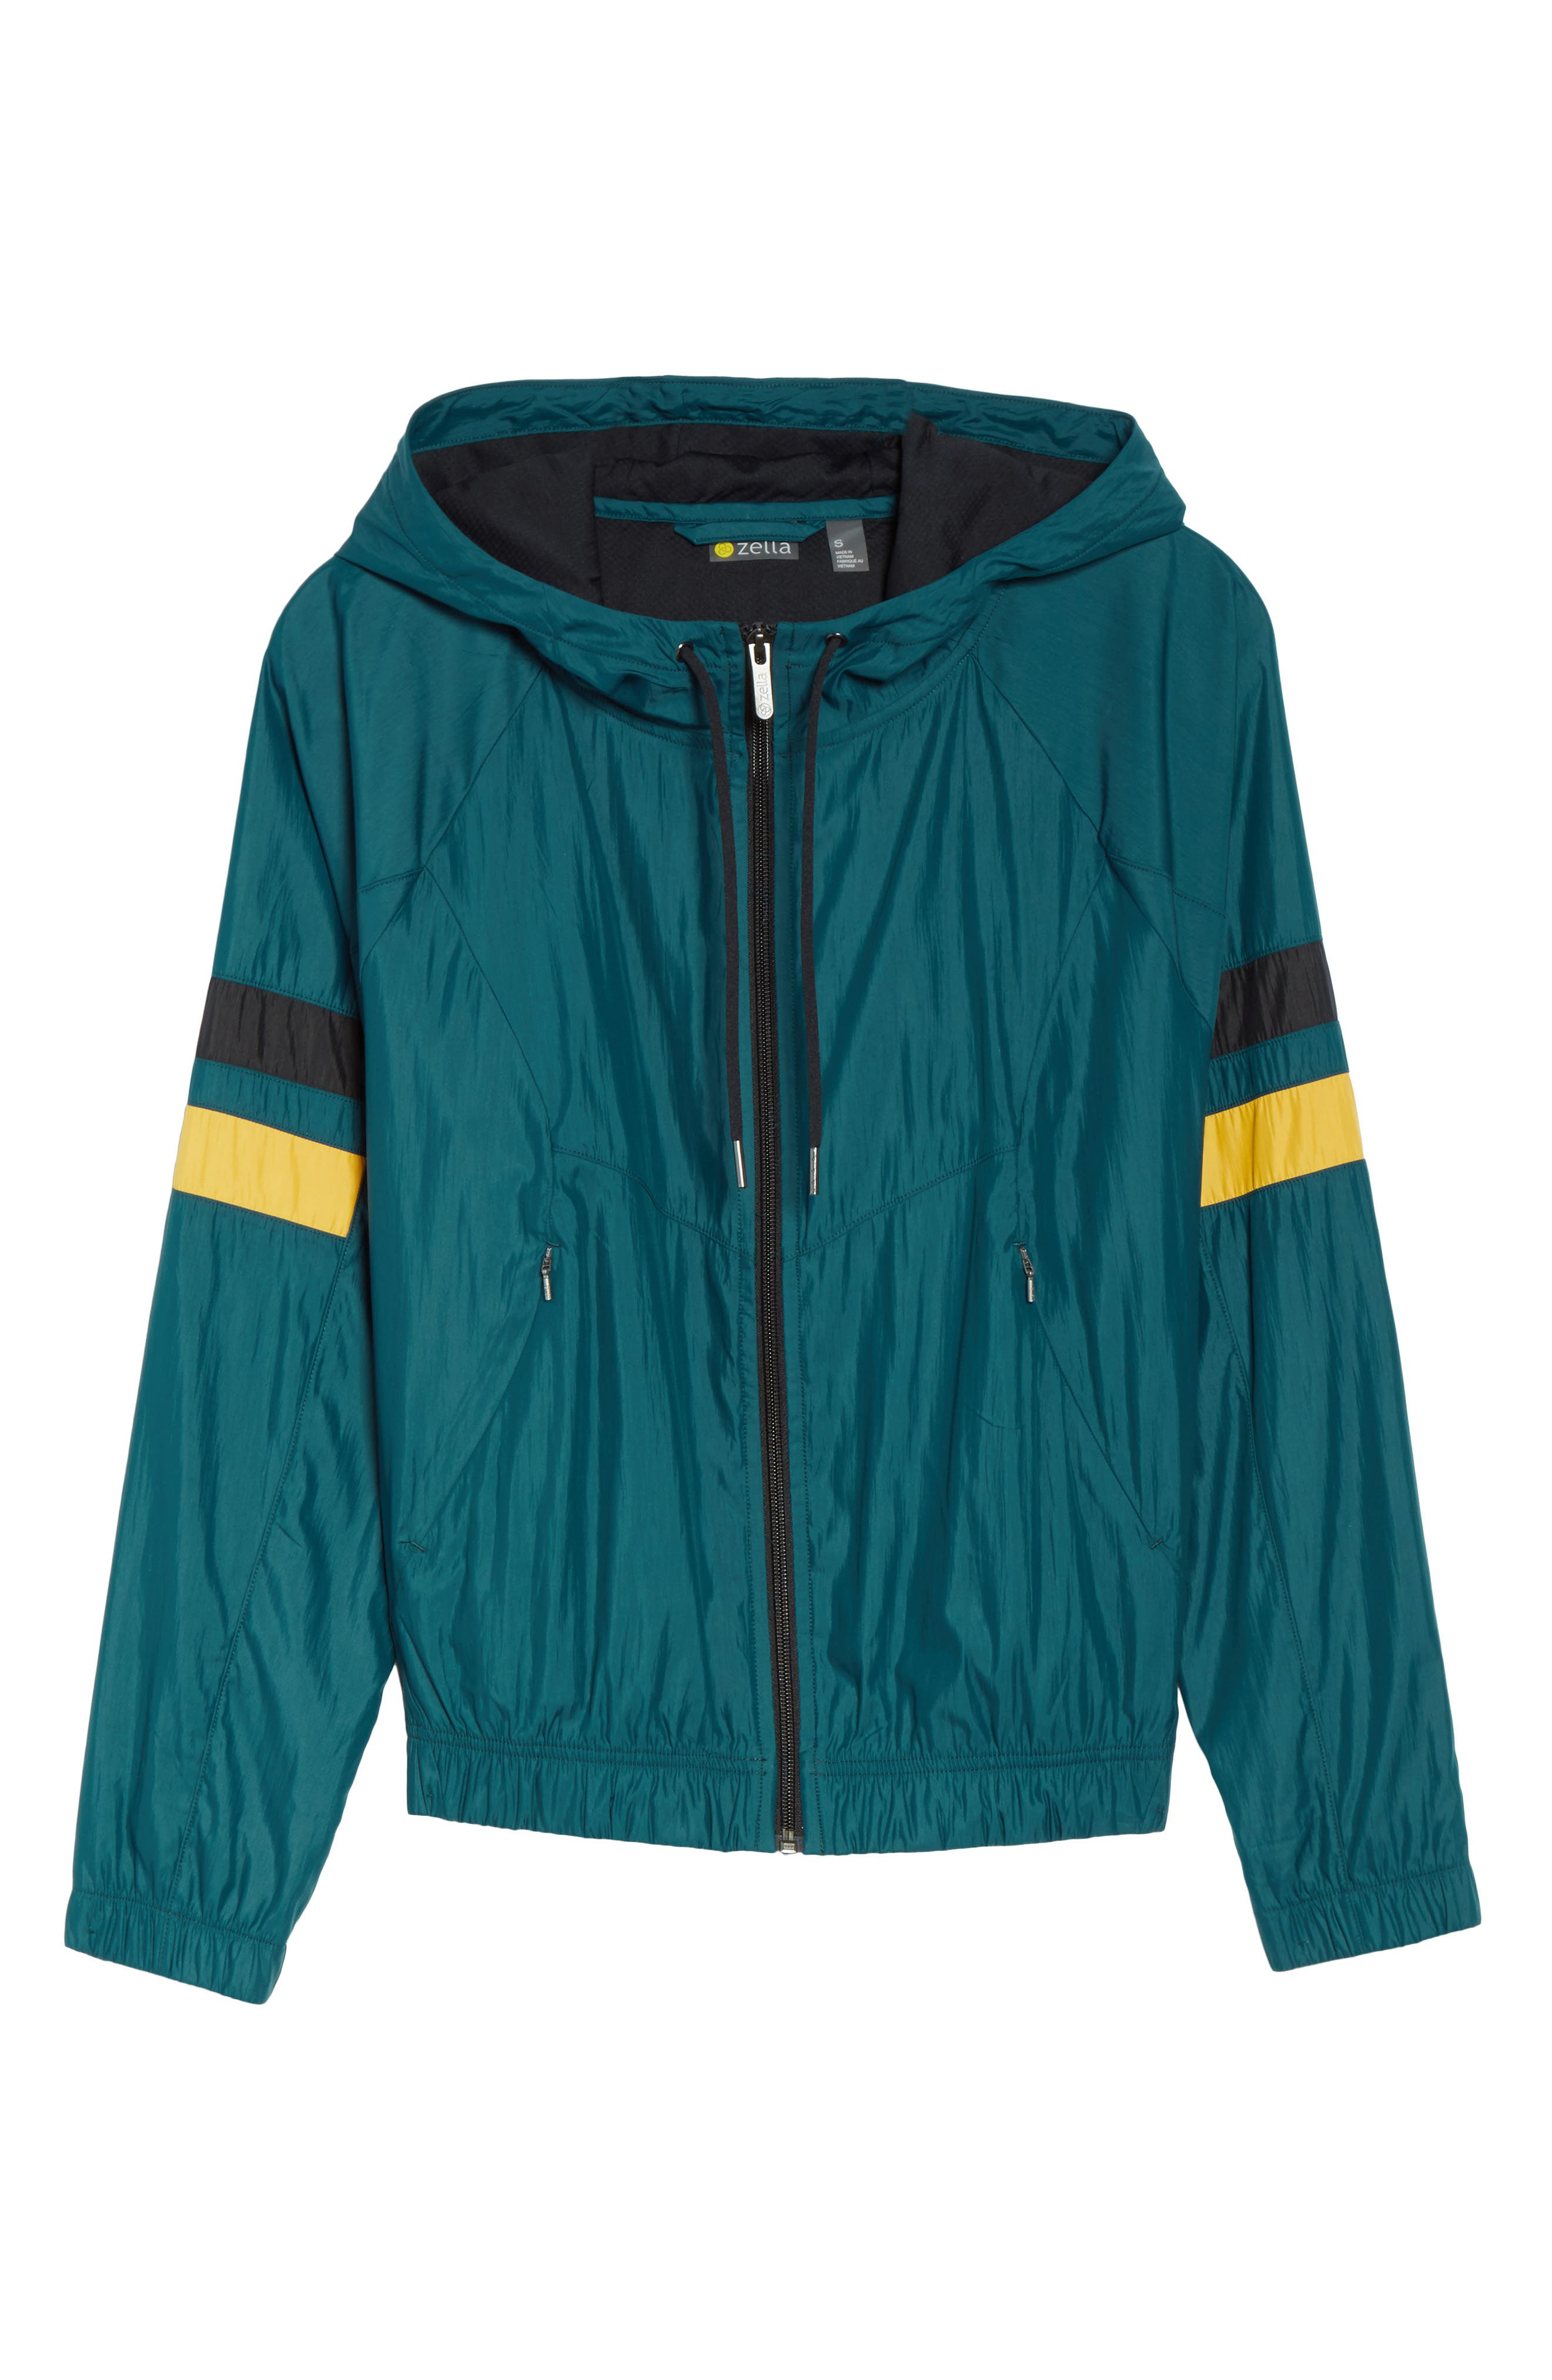 Style Game Colorblock Jacket,                             Alternate thumbnail 5, color,